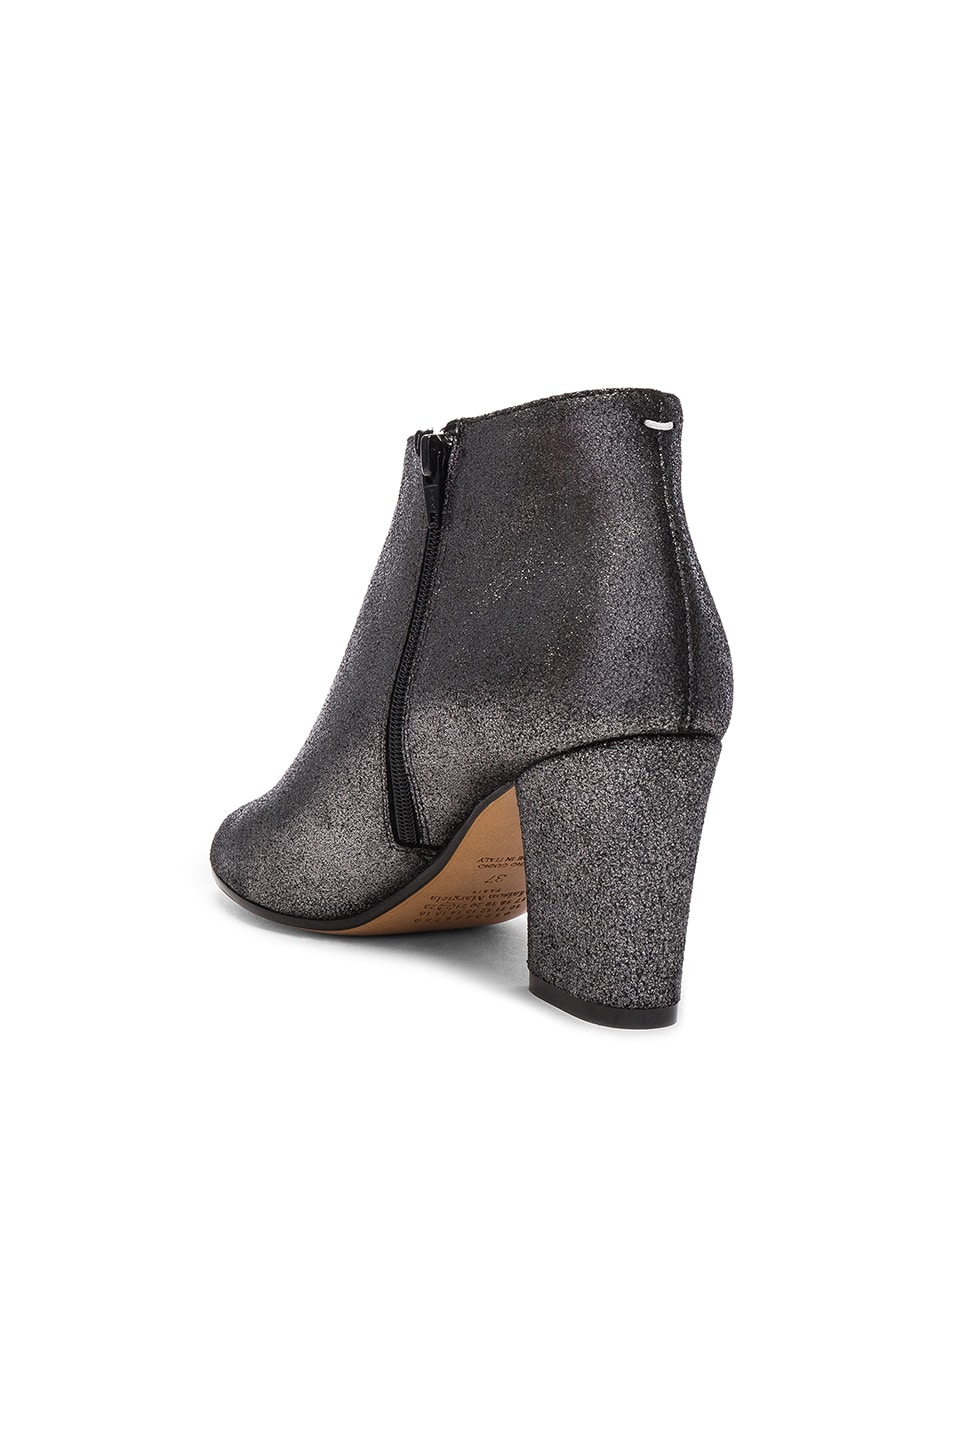 Image 3 of Maison Margiela Open Toe Booties in Black Metallic